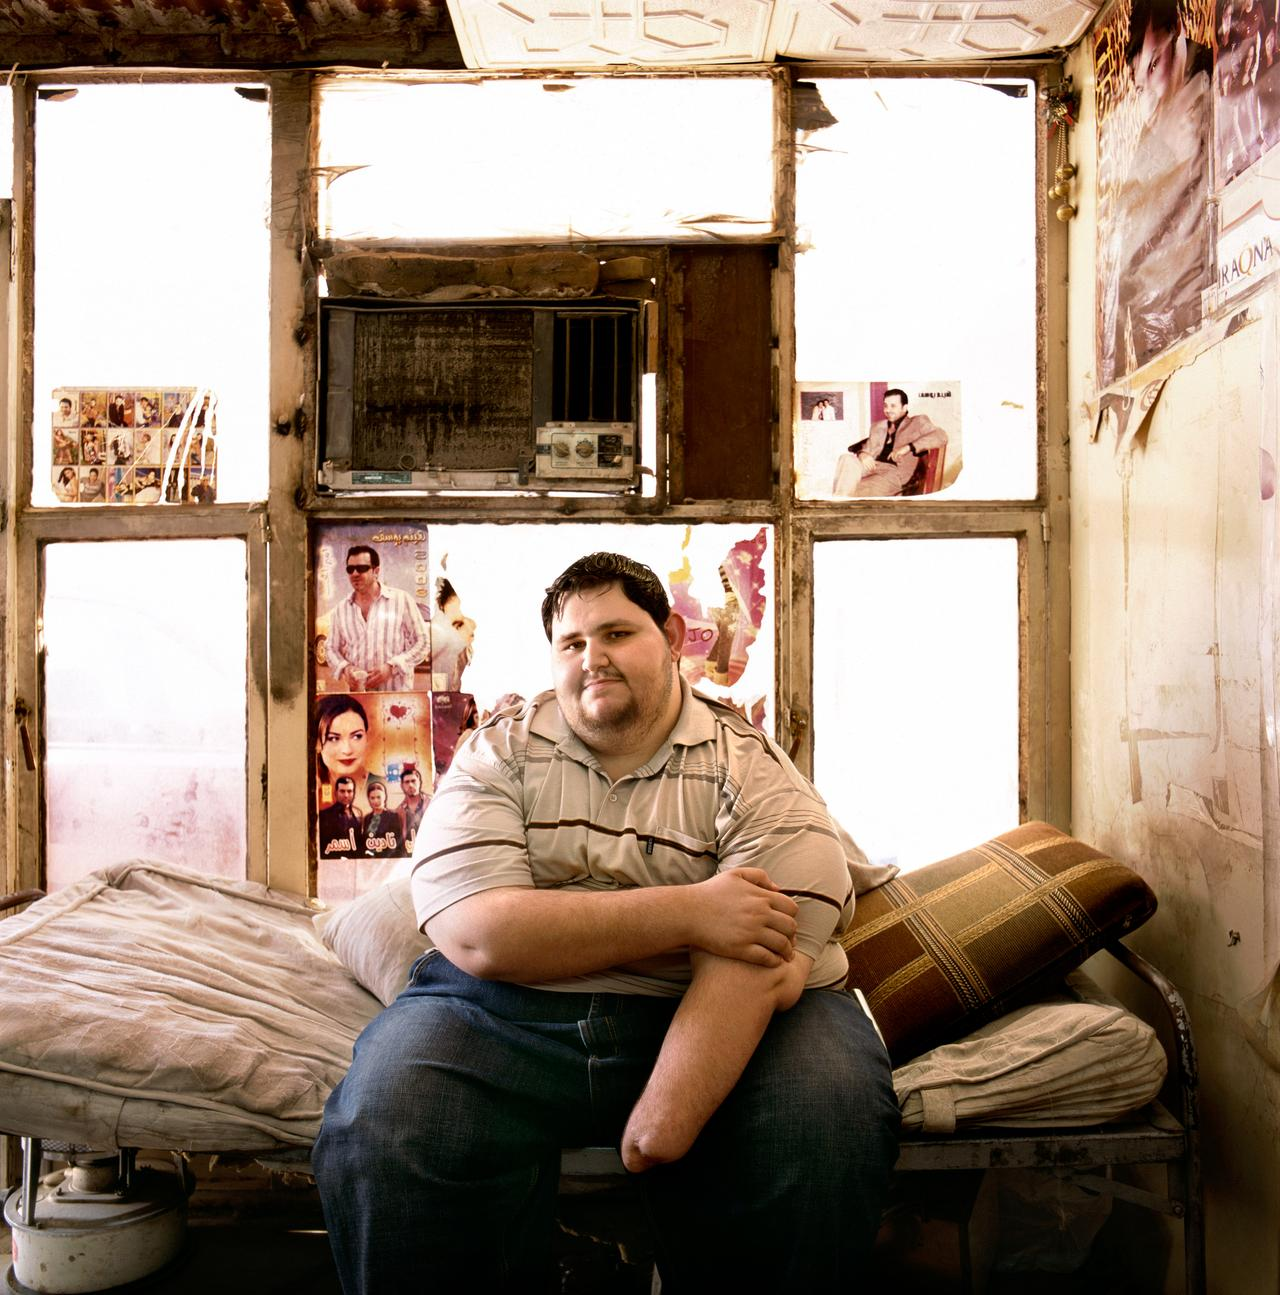 Khuder Hawakeem in his apartment, two days before his gastric bypass surgery. Click the photo for Khuder's full story.